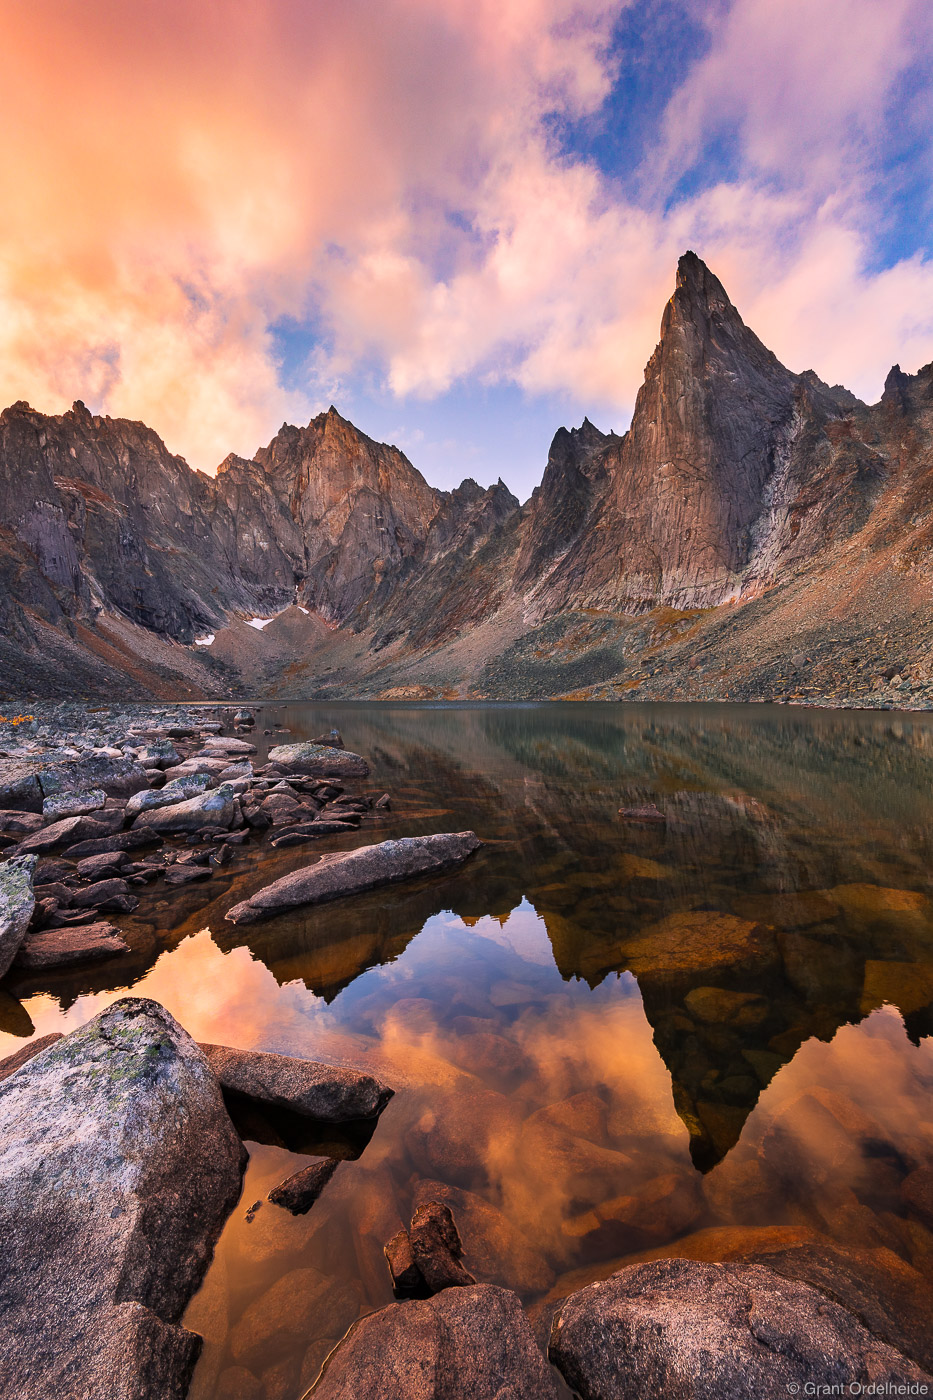 sunset, tombstone, territorial, park, yukon, canada, sunset, remote, alpine, lake, rugged,, photo